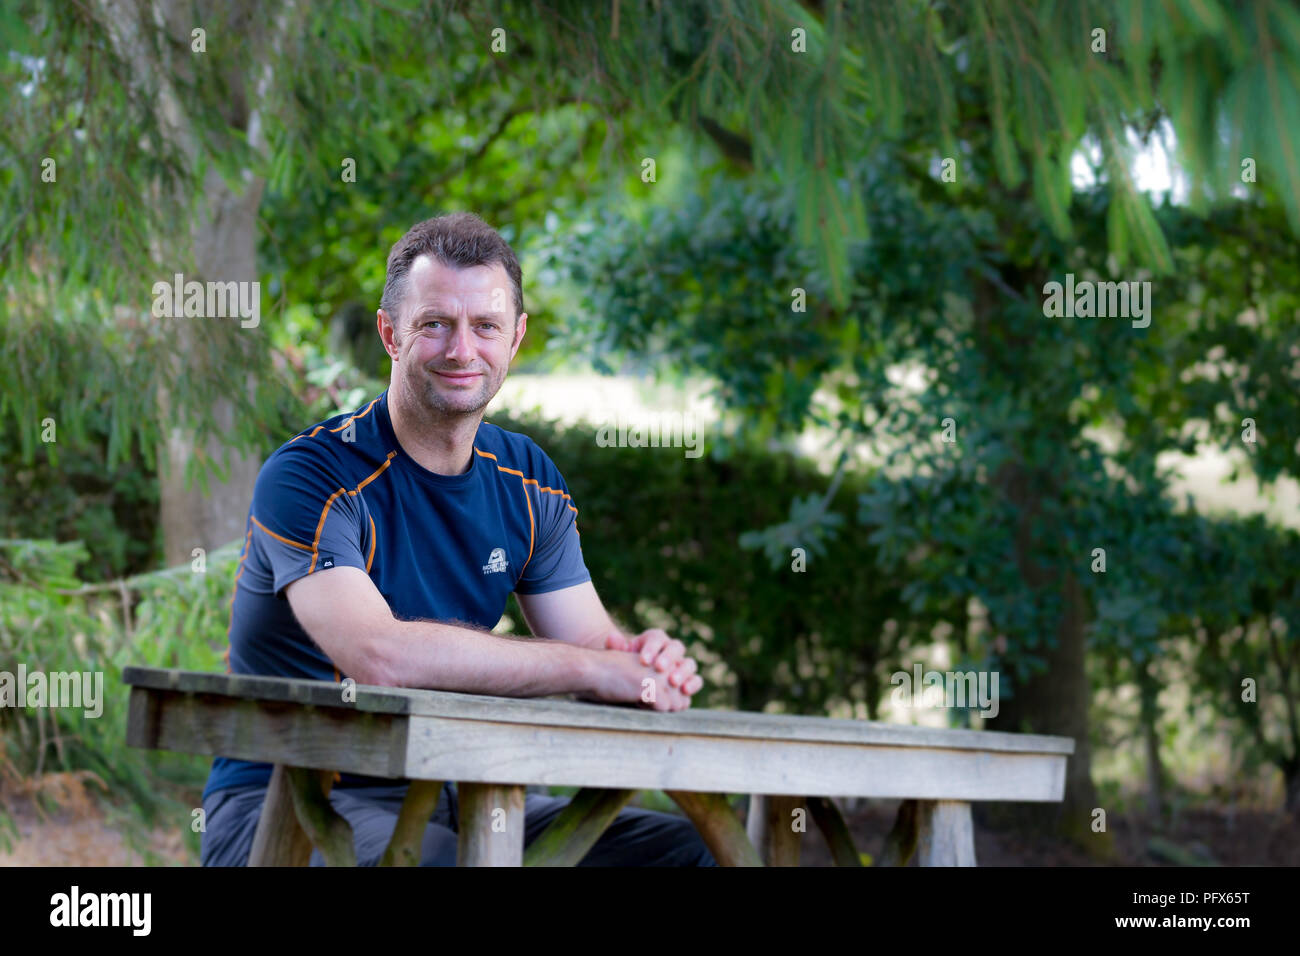 Man in close-fitting T-shirt sat alone at a picnic table in outside rural setting looking face-on to camera, waiting for his lunch. Service is slow! - Stock Image